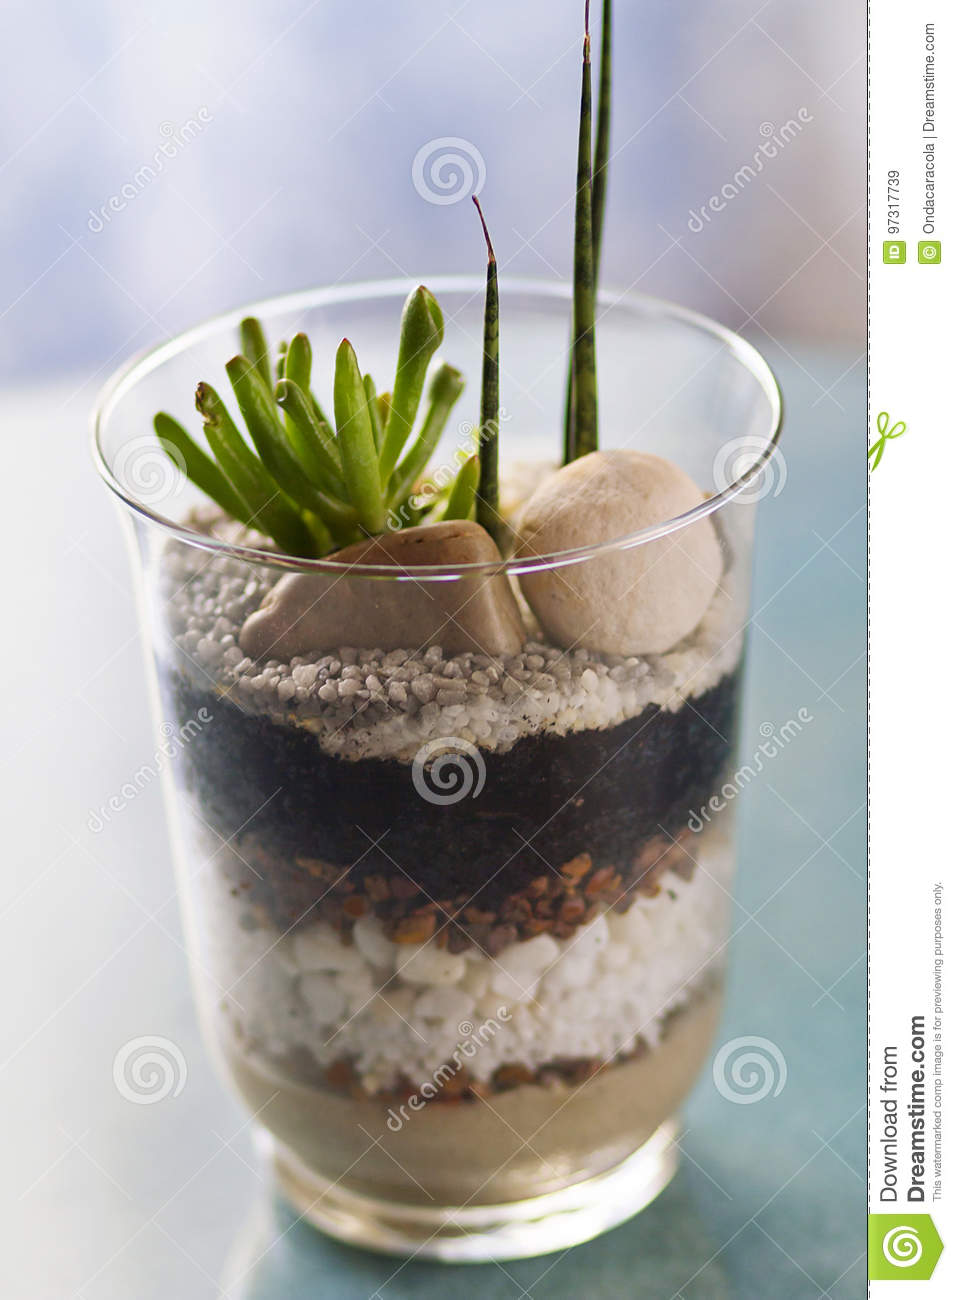 Terrarium Stock Image Image Of Concept Greenhouse Growth 97317739